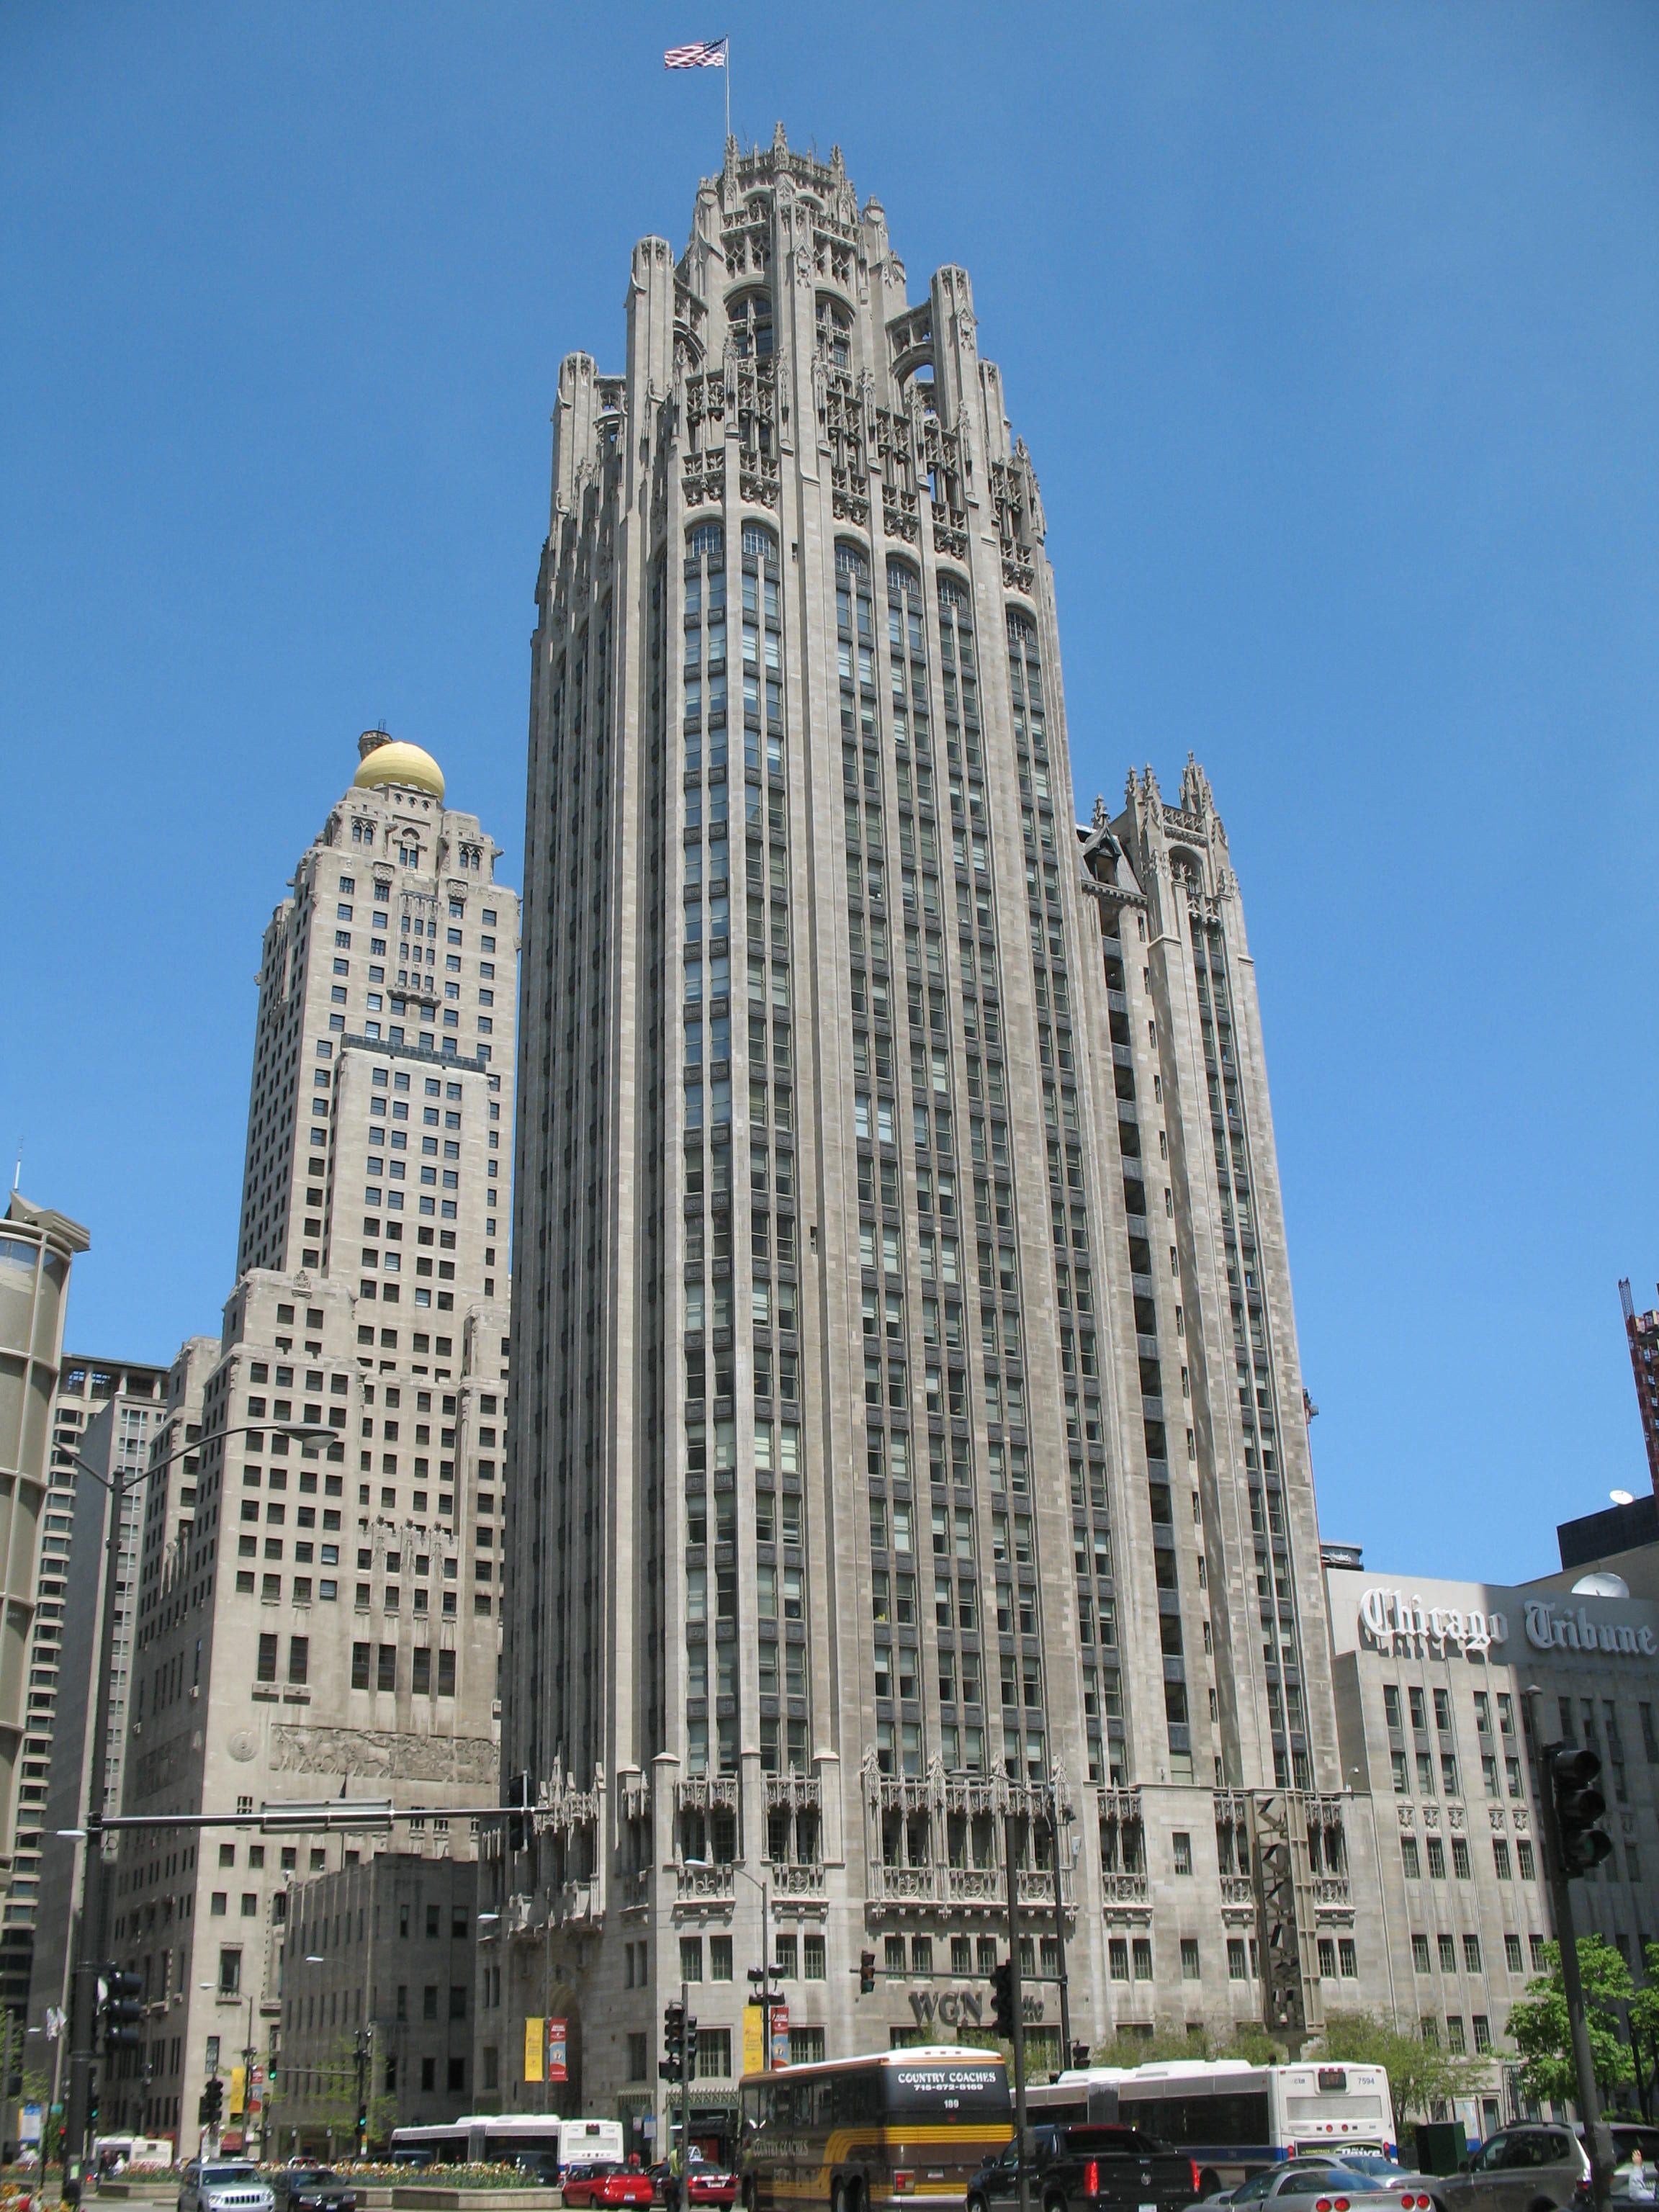 Tribune Tower In Chicago Sells For 240 Million : tct build 61 from theculturetrip.com size 2304 x 3072 jpeg 867kB